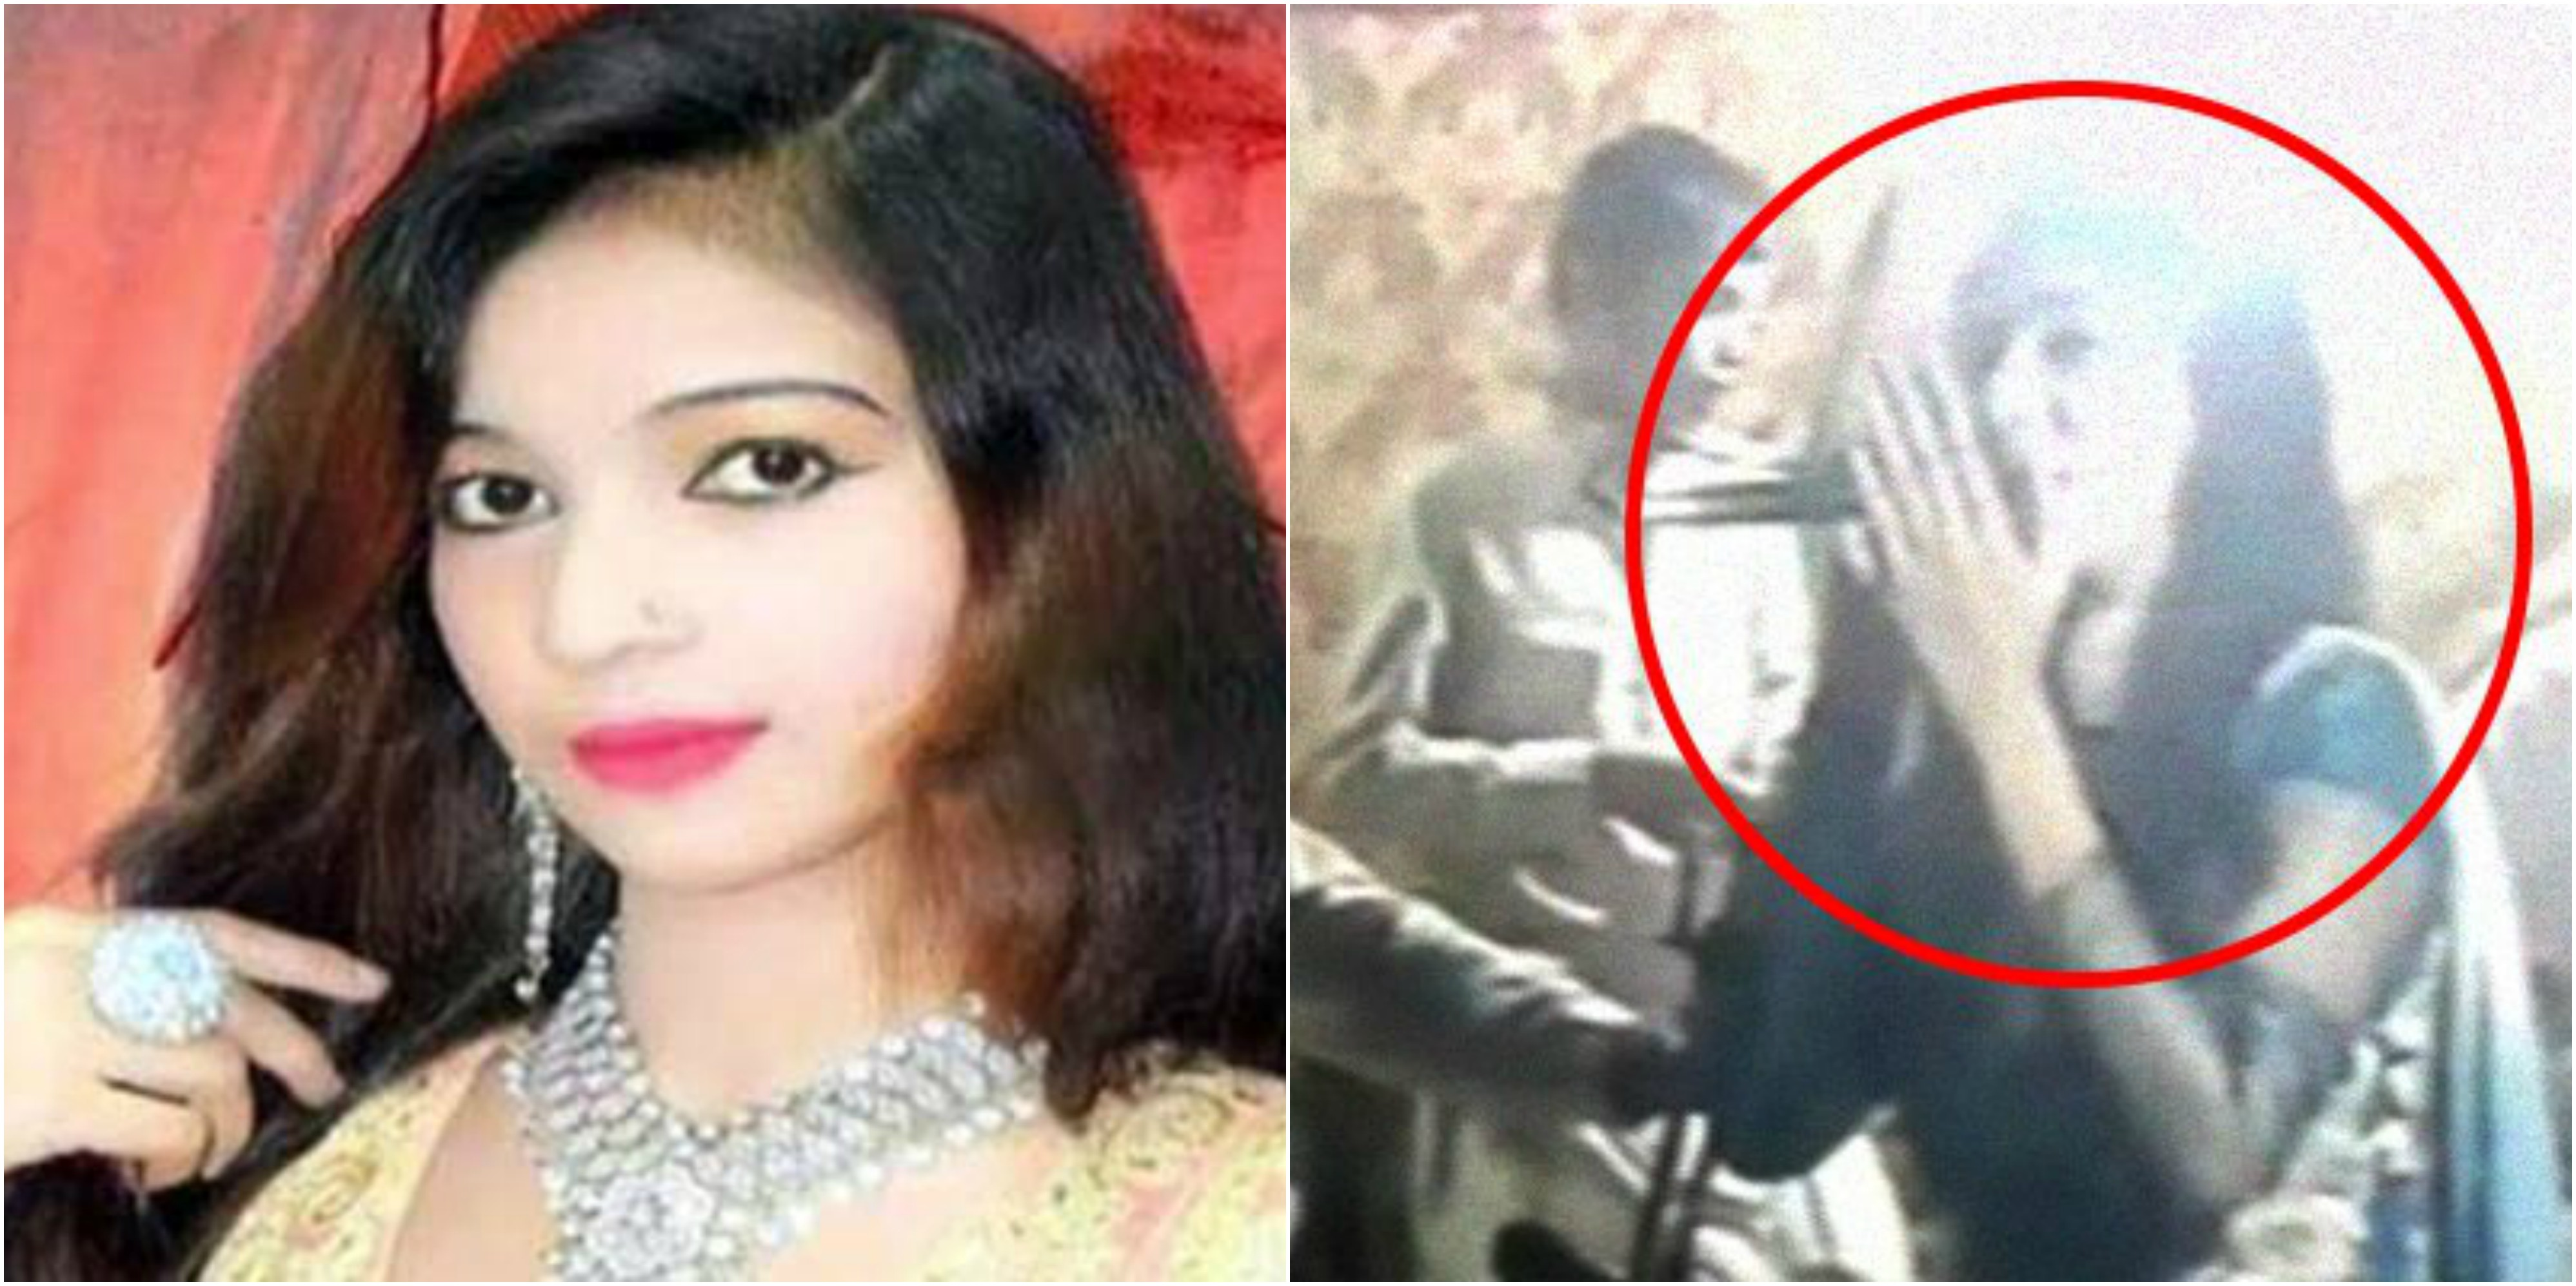 pakistani-singer-shot-dead-after-she-refused-to-stand-while-performing